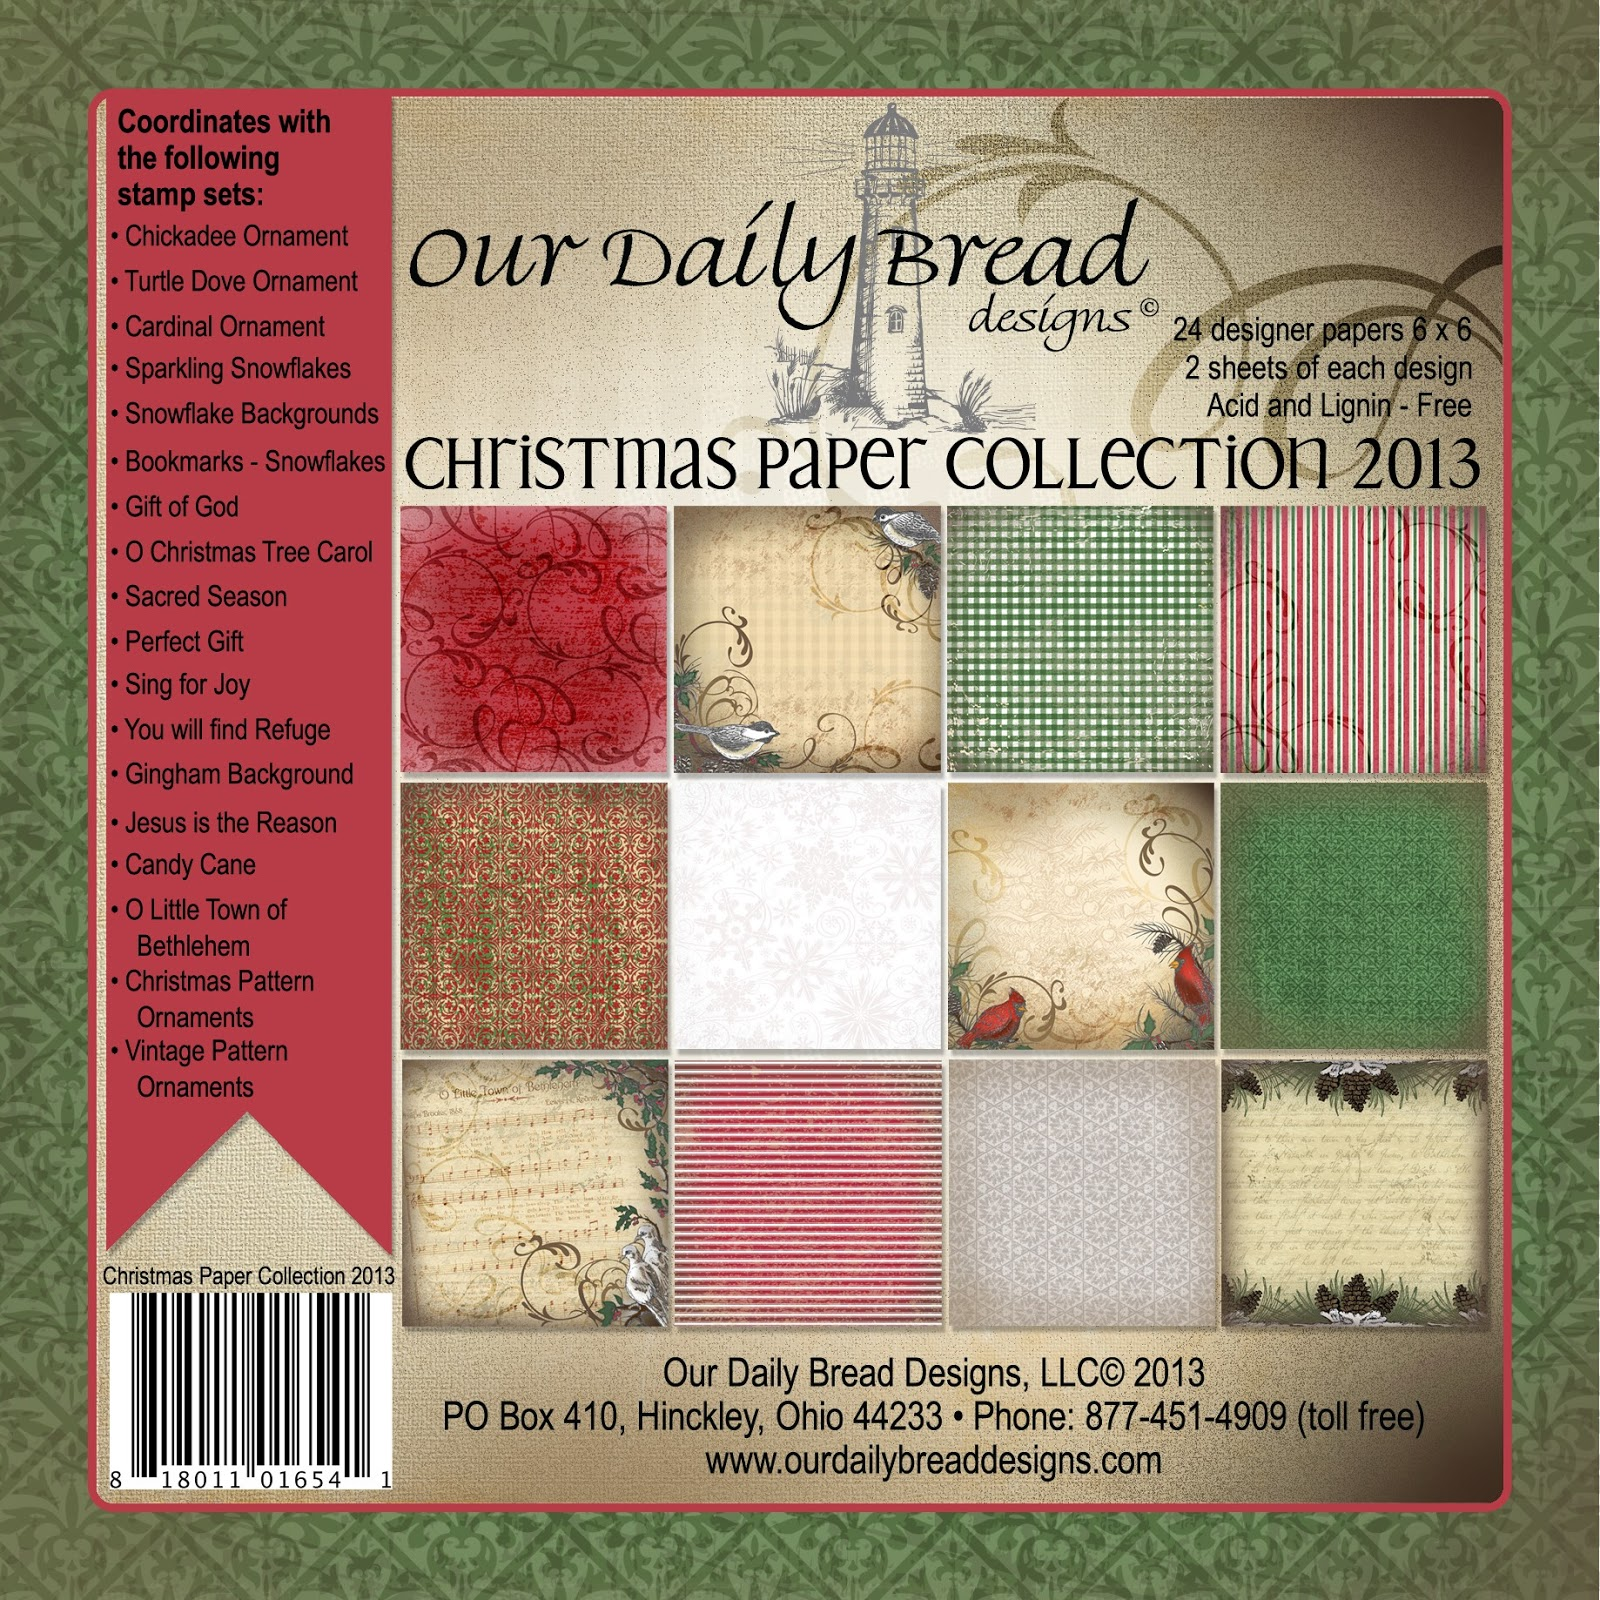 https://www.ourdailybreaddesigns.com/index.php/christmas-paper-collection-2013.html